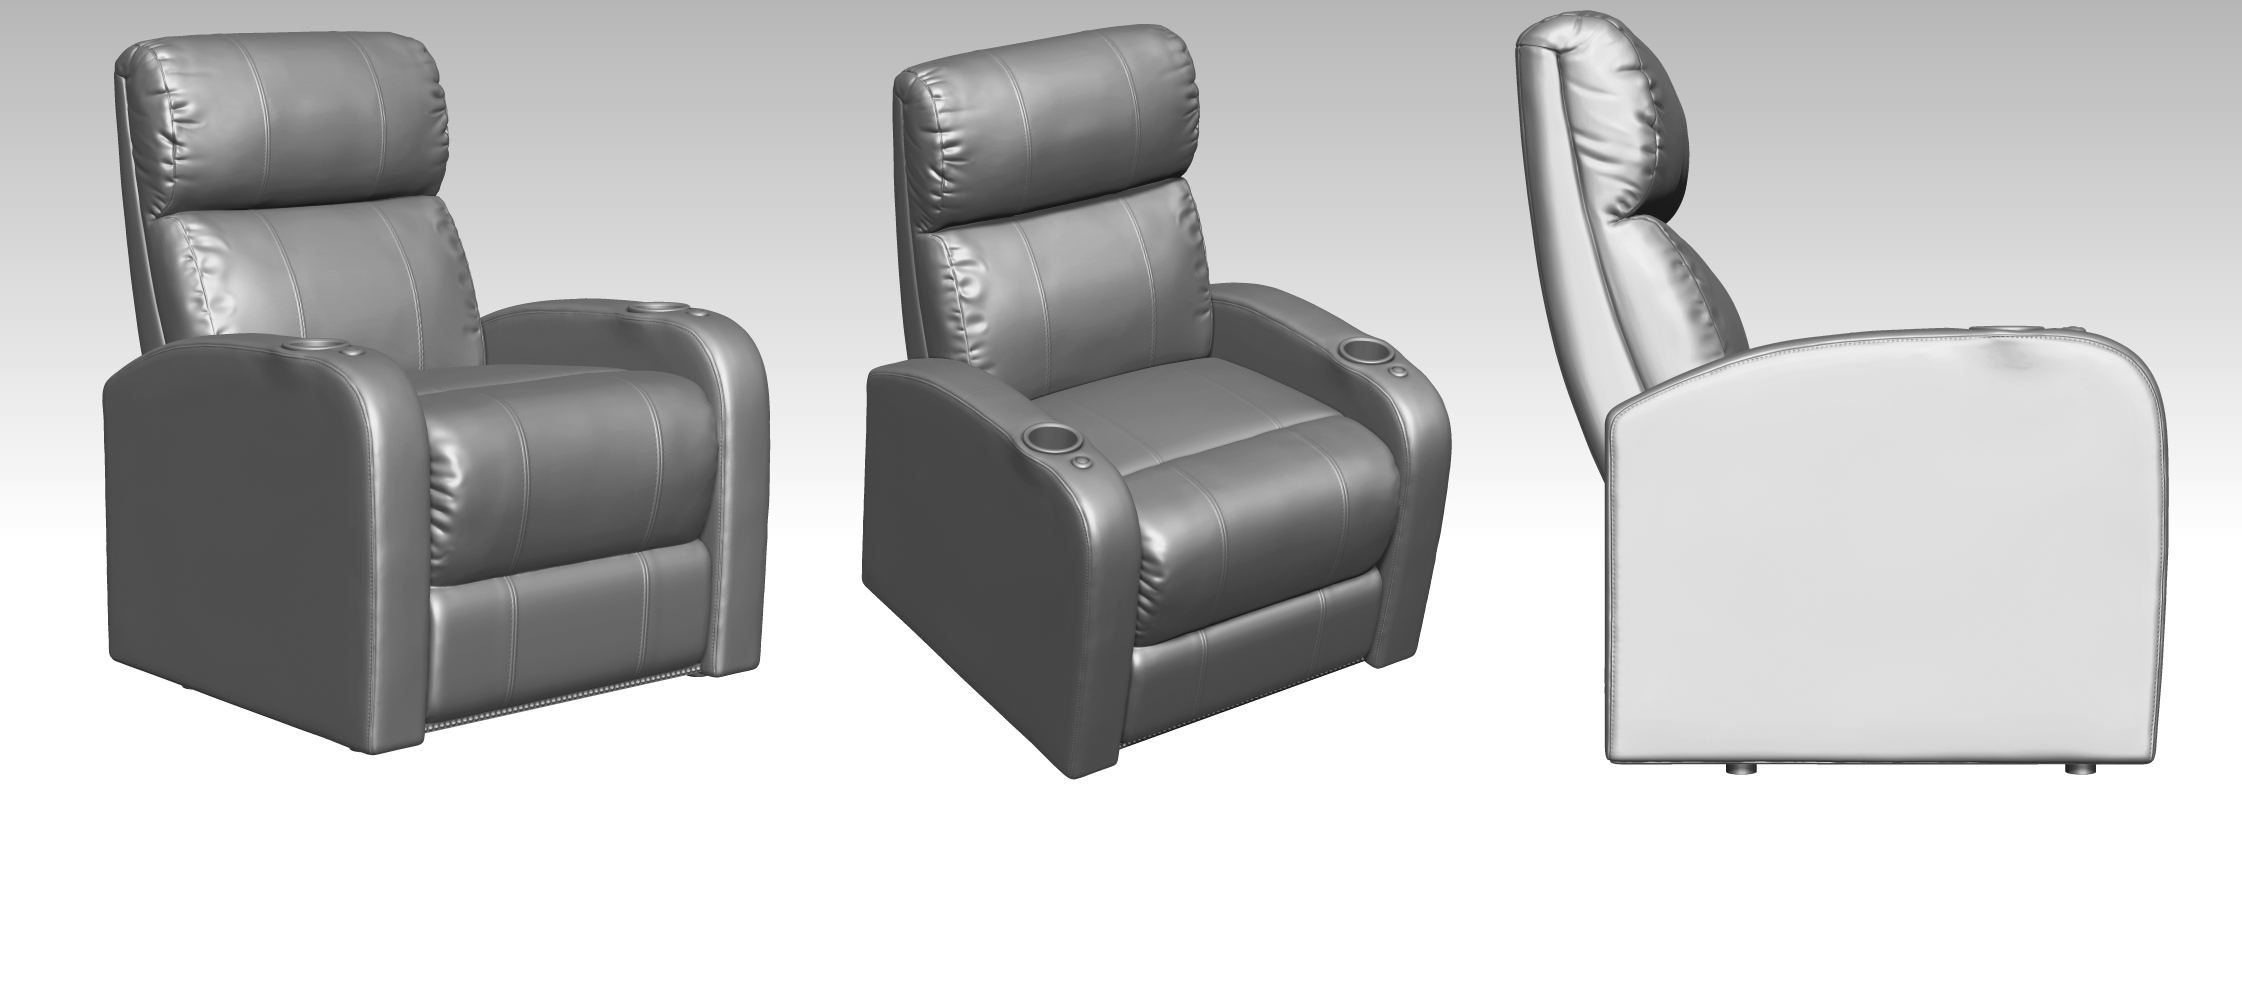 3D Models for a Luxurious Armchair Design